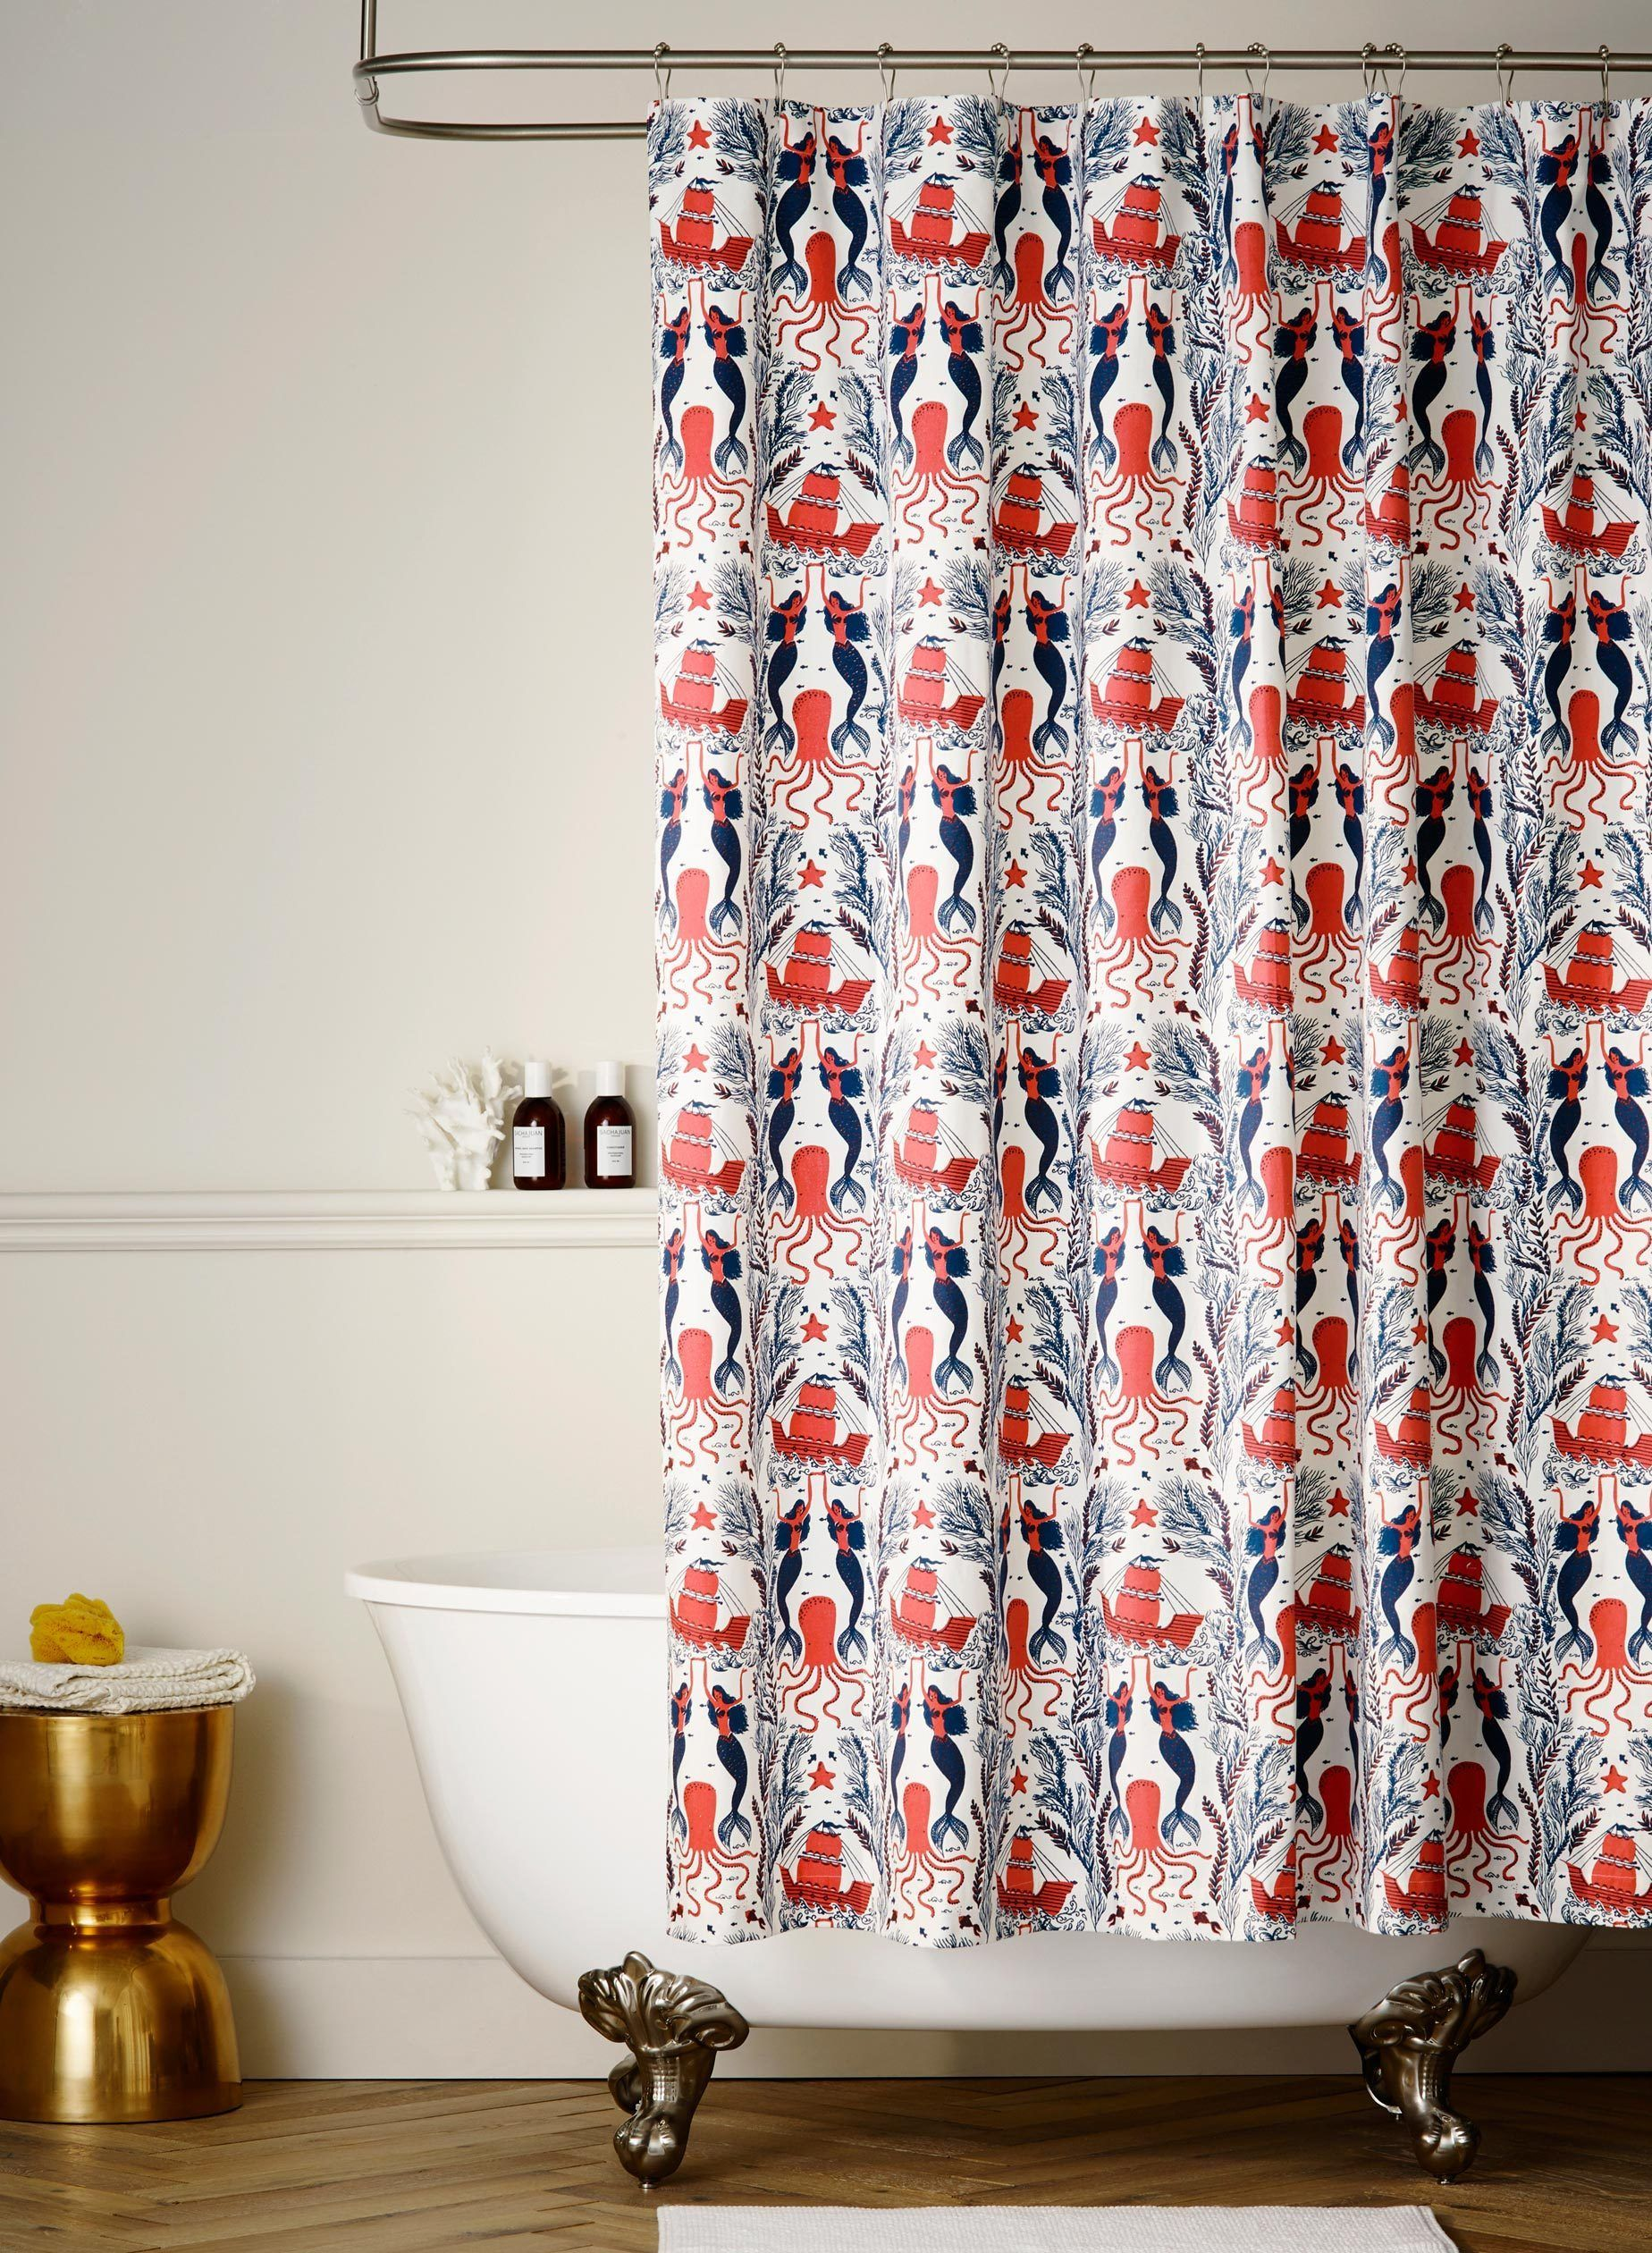 One Part That Can Make Your Scandinavian Bathroom Look A Lot More Attractive Is The Shower Coral Shower Curtains Cute Shower Curtains Navy Blue Bathroom Decor